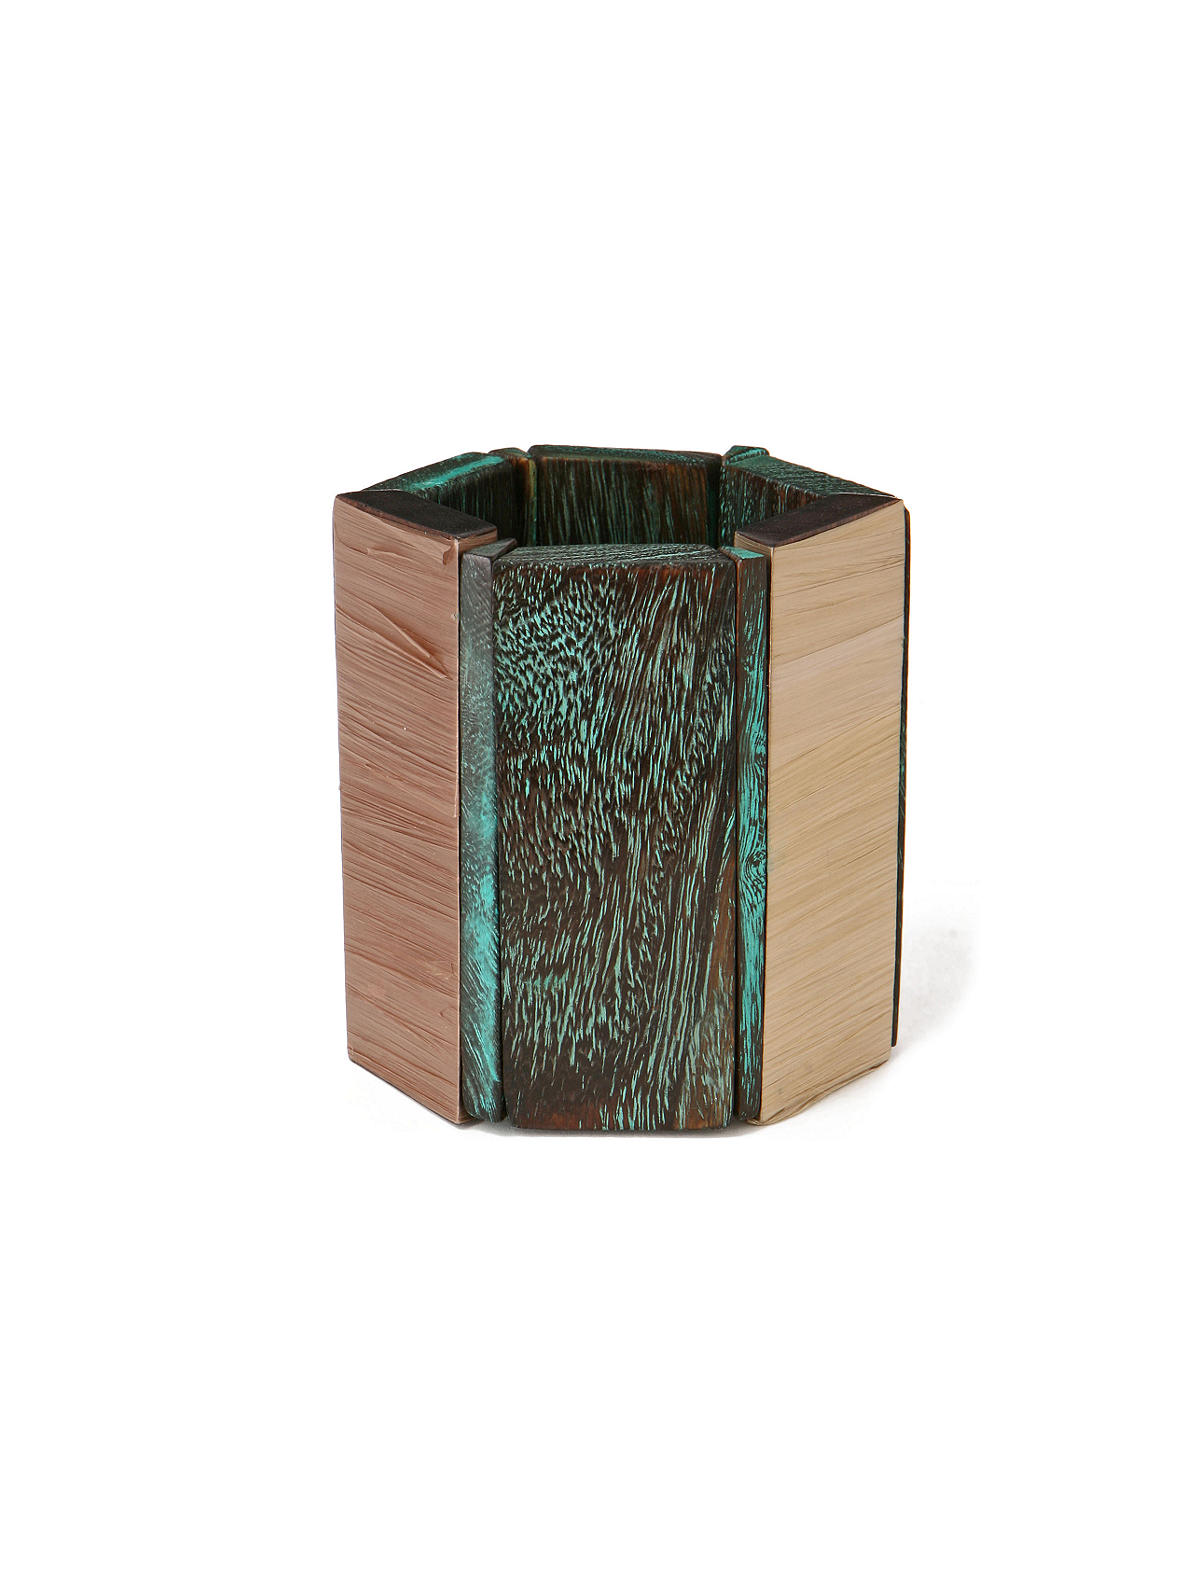 Siumu Bangle - Anthropologie.com :  wood rafia green elastic